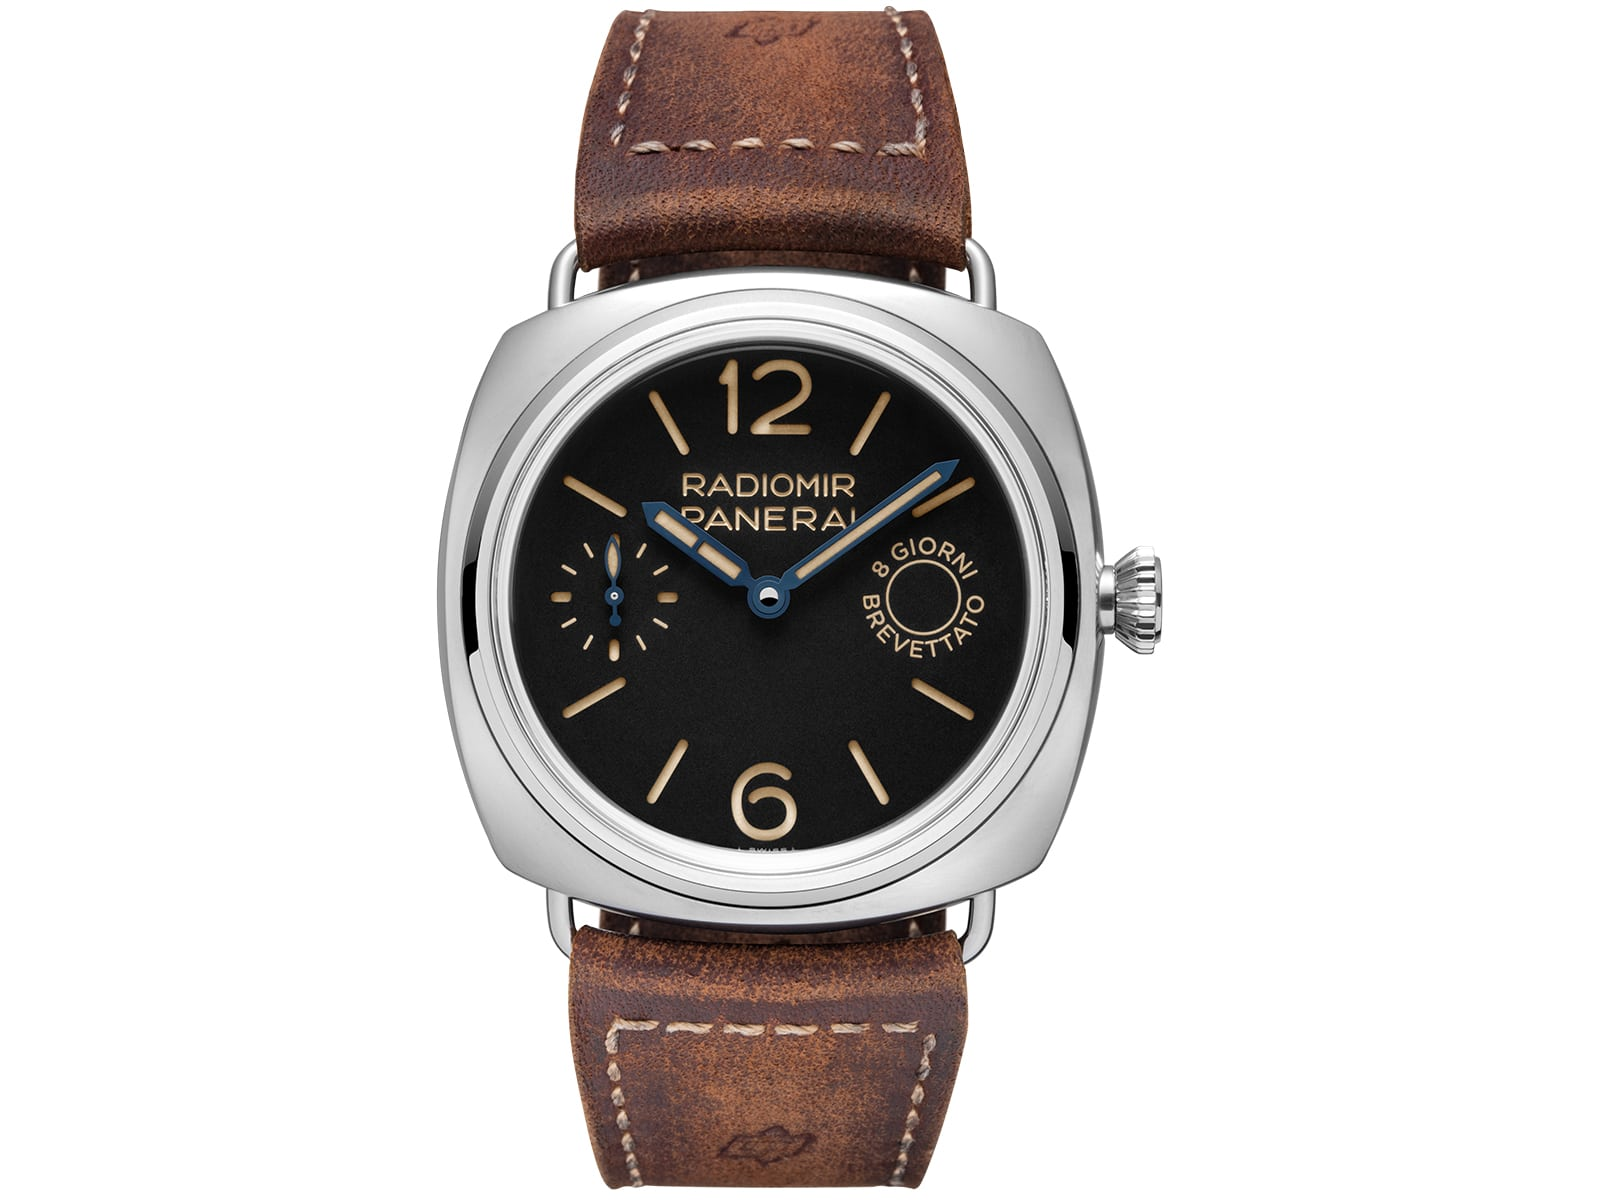 pam00992-panerai-radiomir-8-days-45-mm-6.jpg